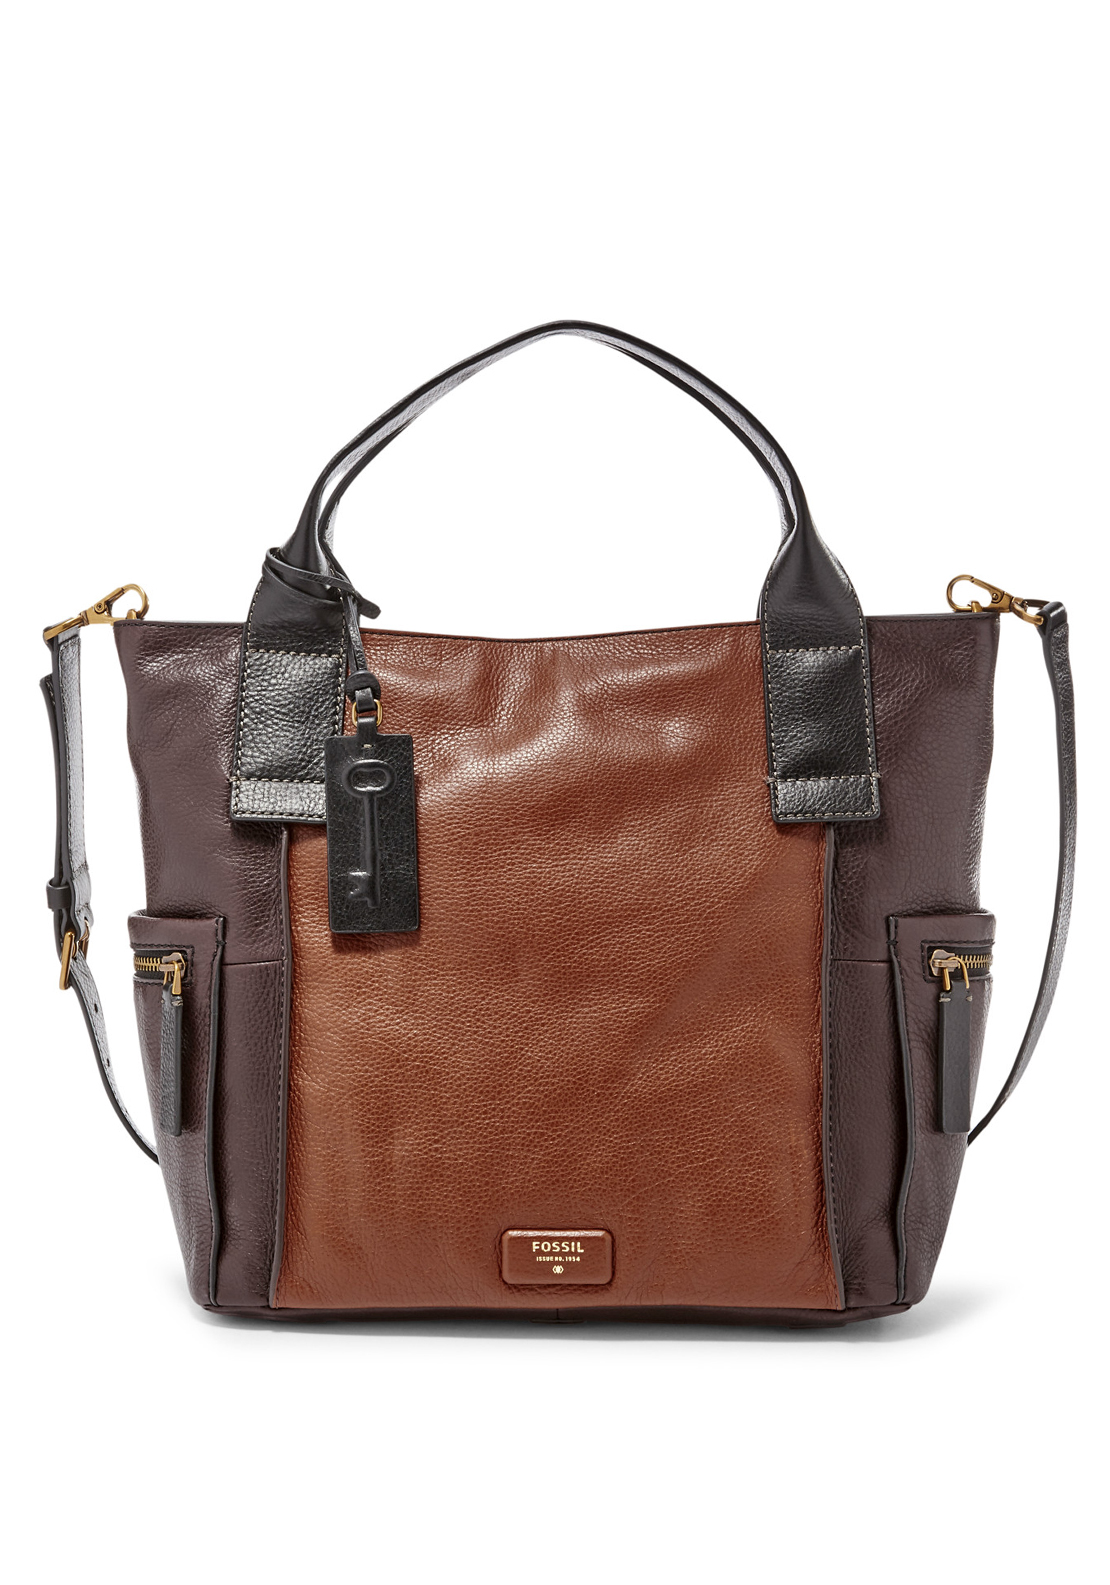 Fossil Emerson Colour Block Leather Satchel Bag, Brown